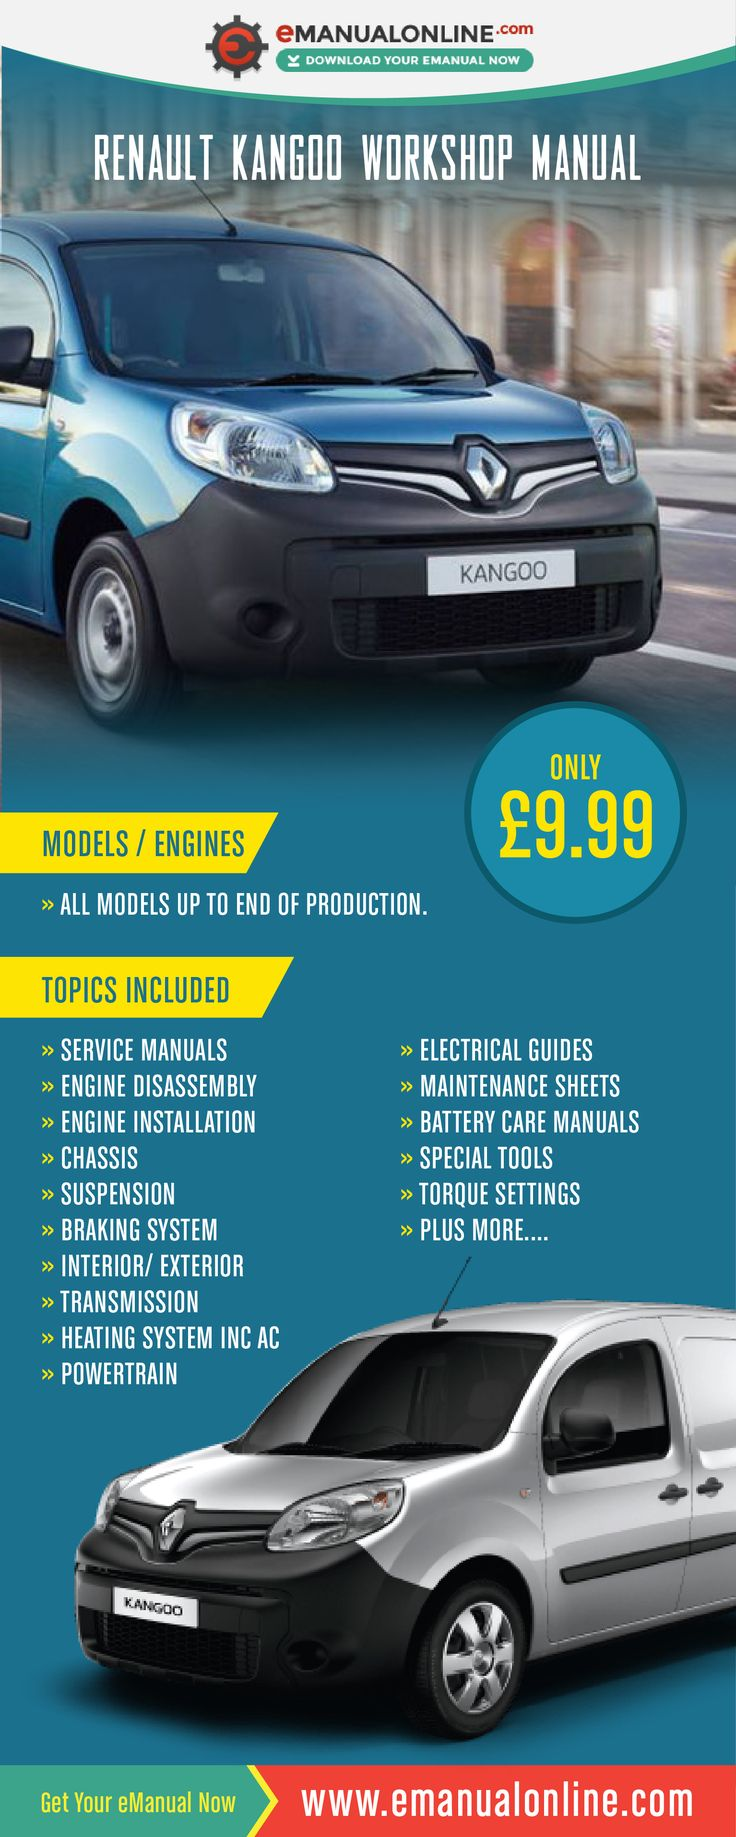 The 35 best top 35 cars manual images on pinterest business renault kangoo workshop manual this workshop manual contains literally thousands of problem diagnosis and repair fandeluxe Images